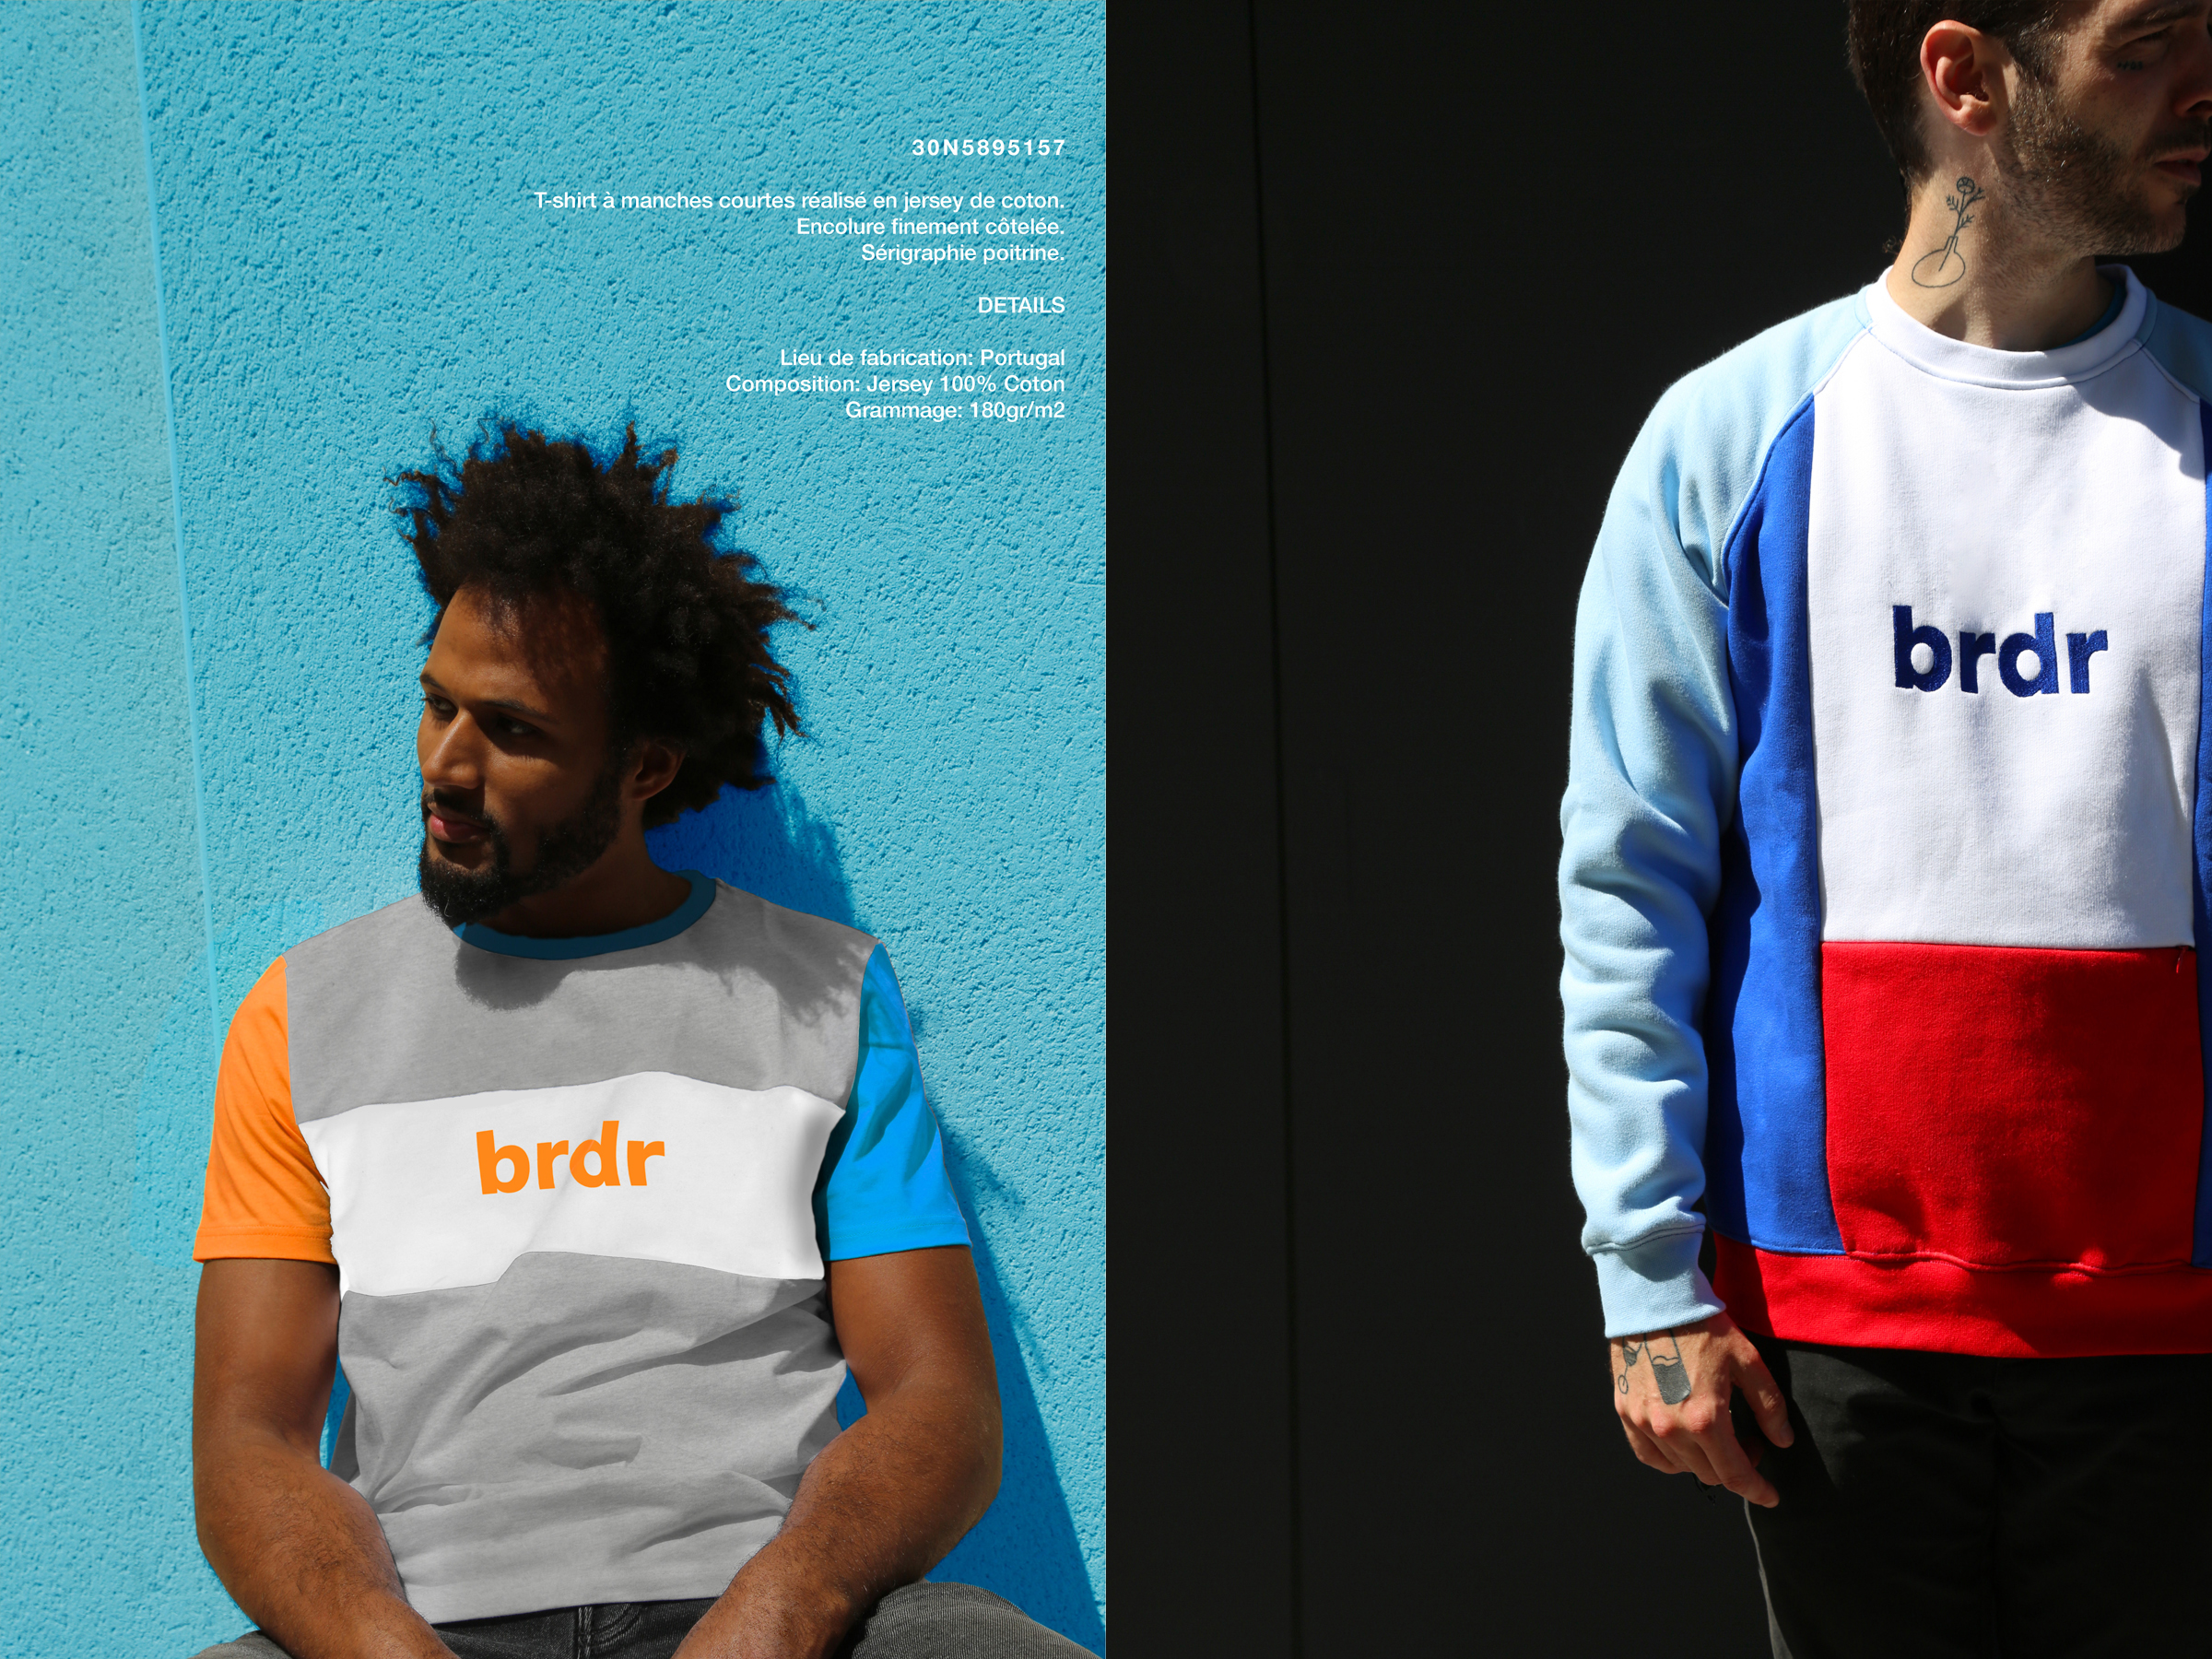 brdr Lookbook page 12